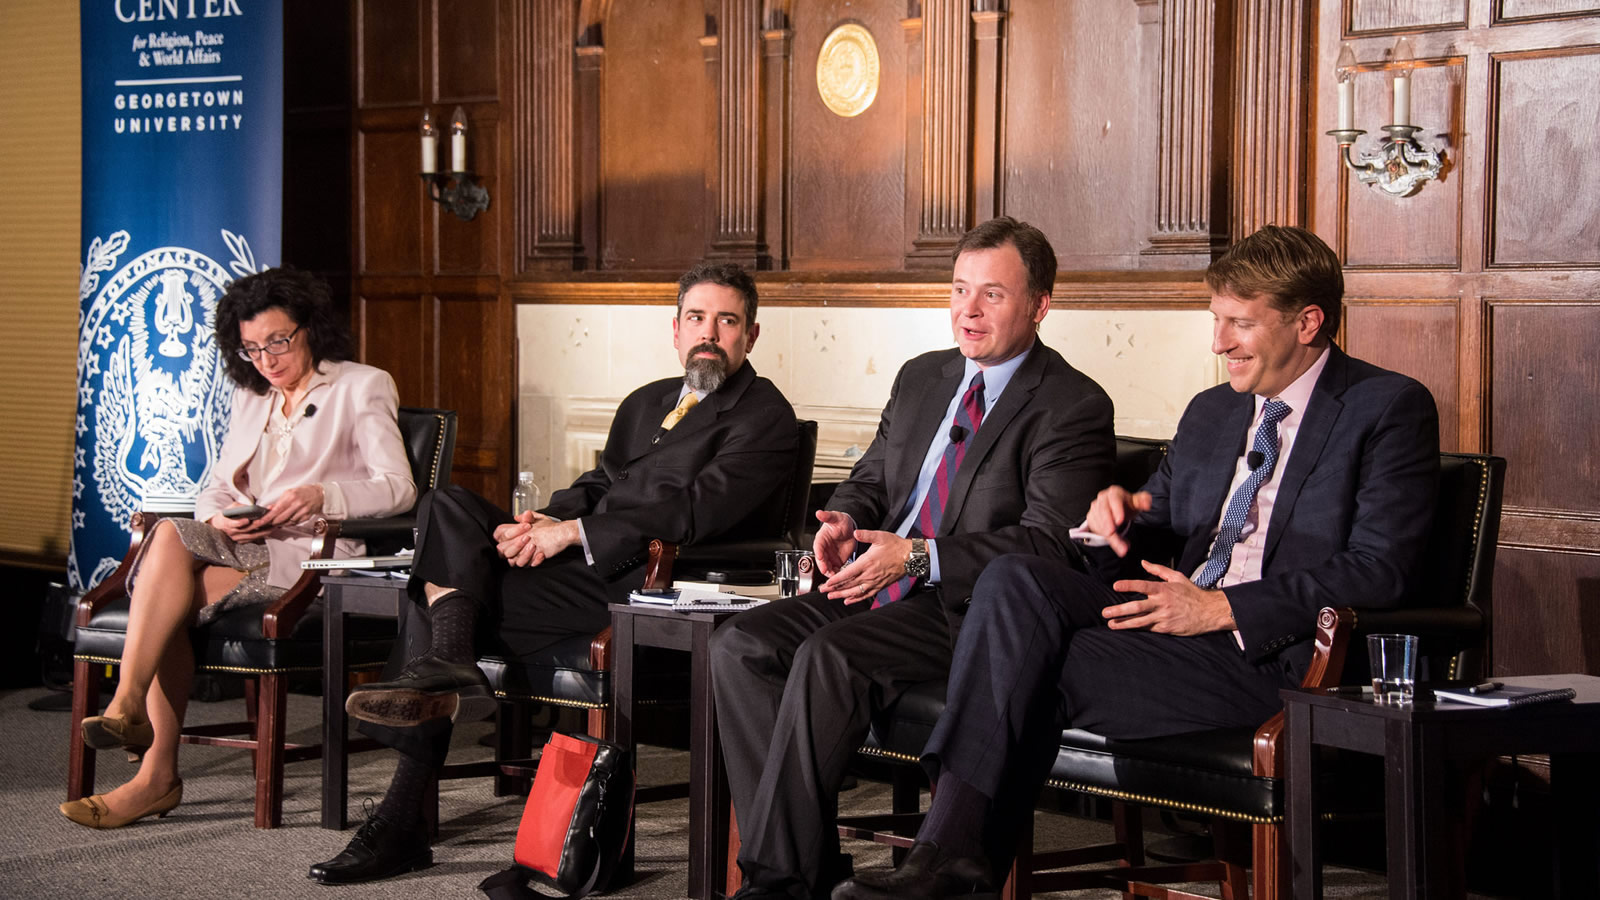 Panelists discuss the nexus of security, religion, and global governance.